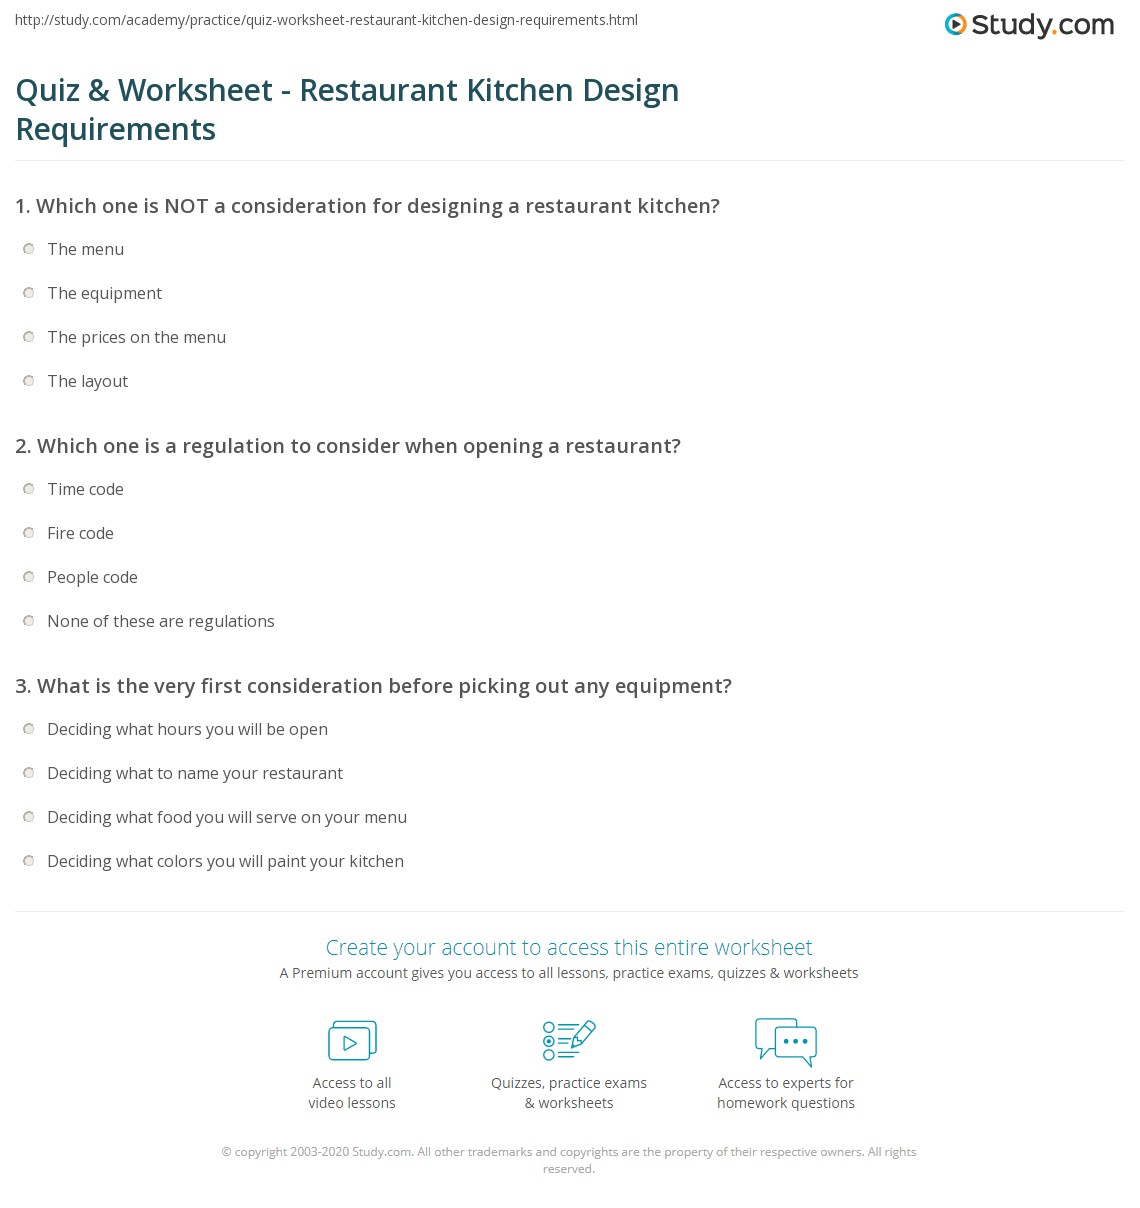 Print Restaurant Kitchen Design: Requirements U0026 Considerations Worksheet